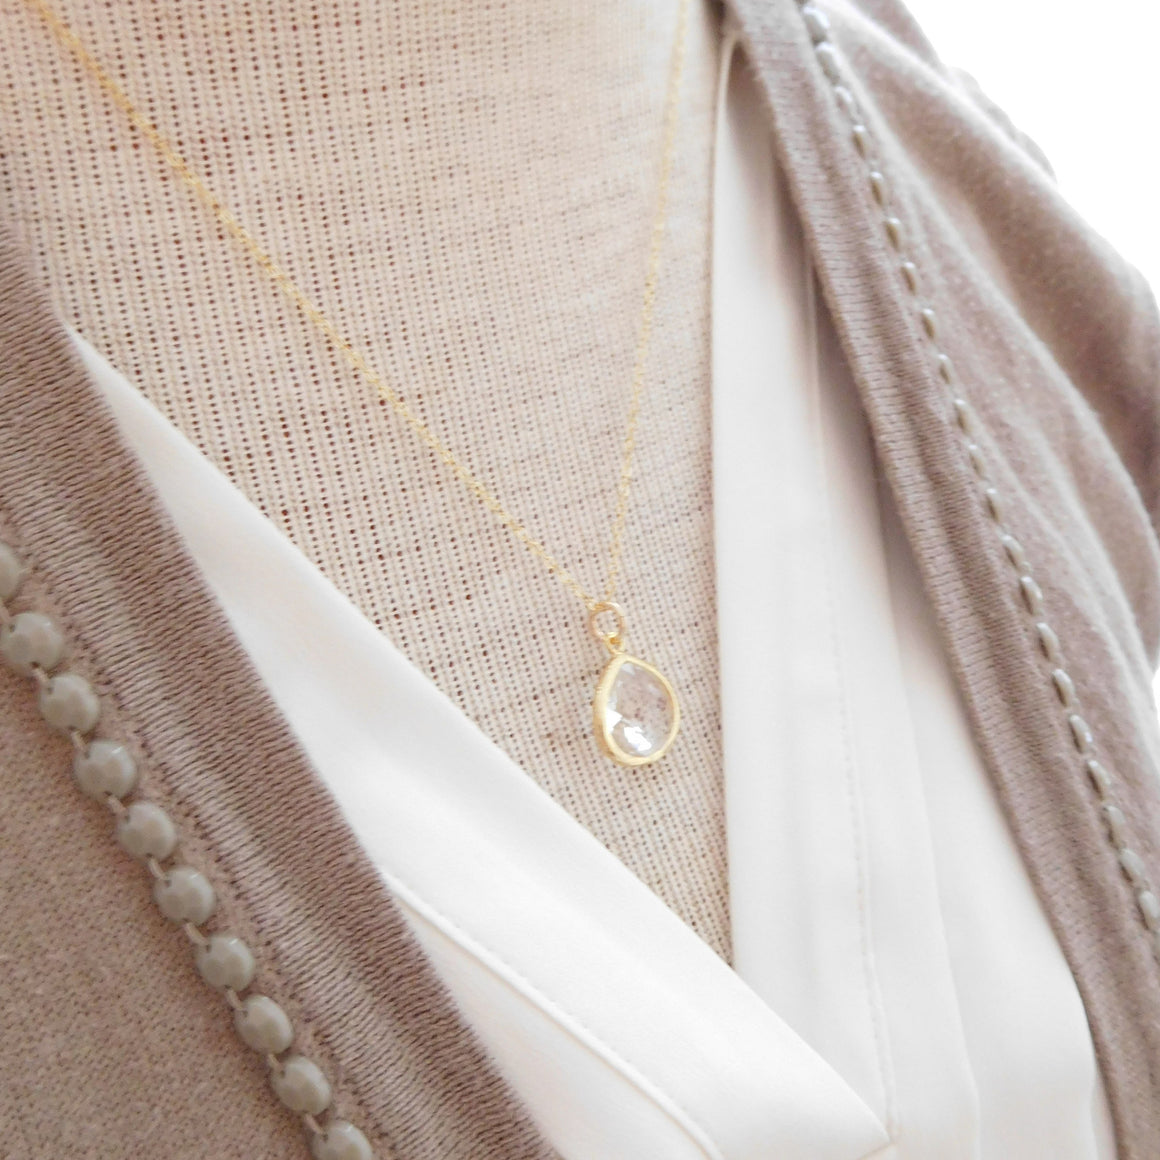 Bliss Necklace | With Gold Leaf Charm | 22 Colors